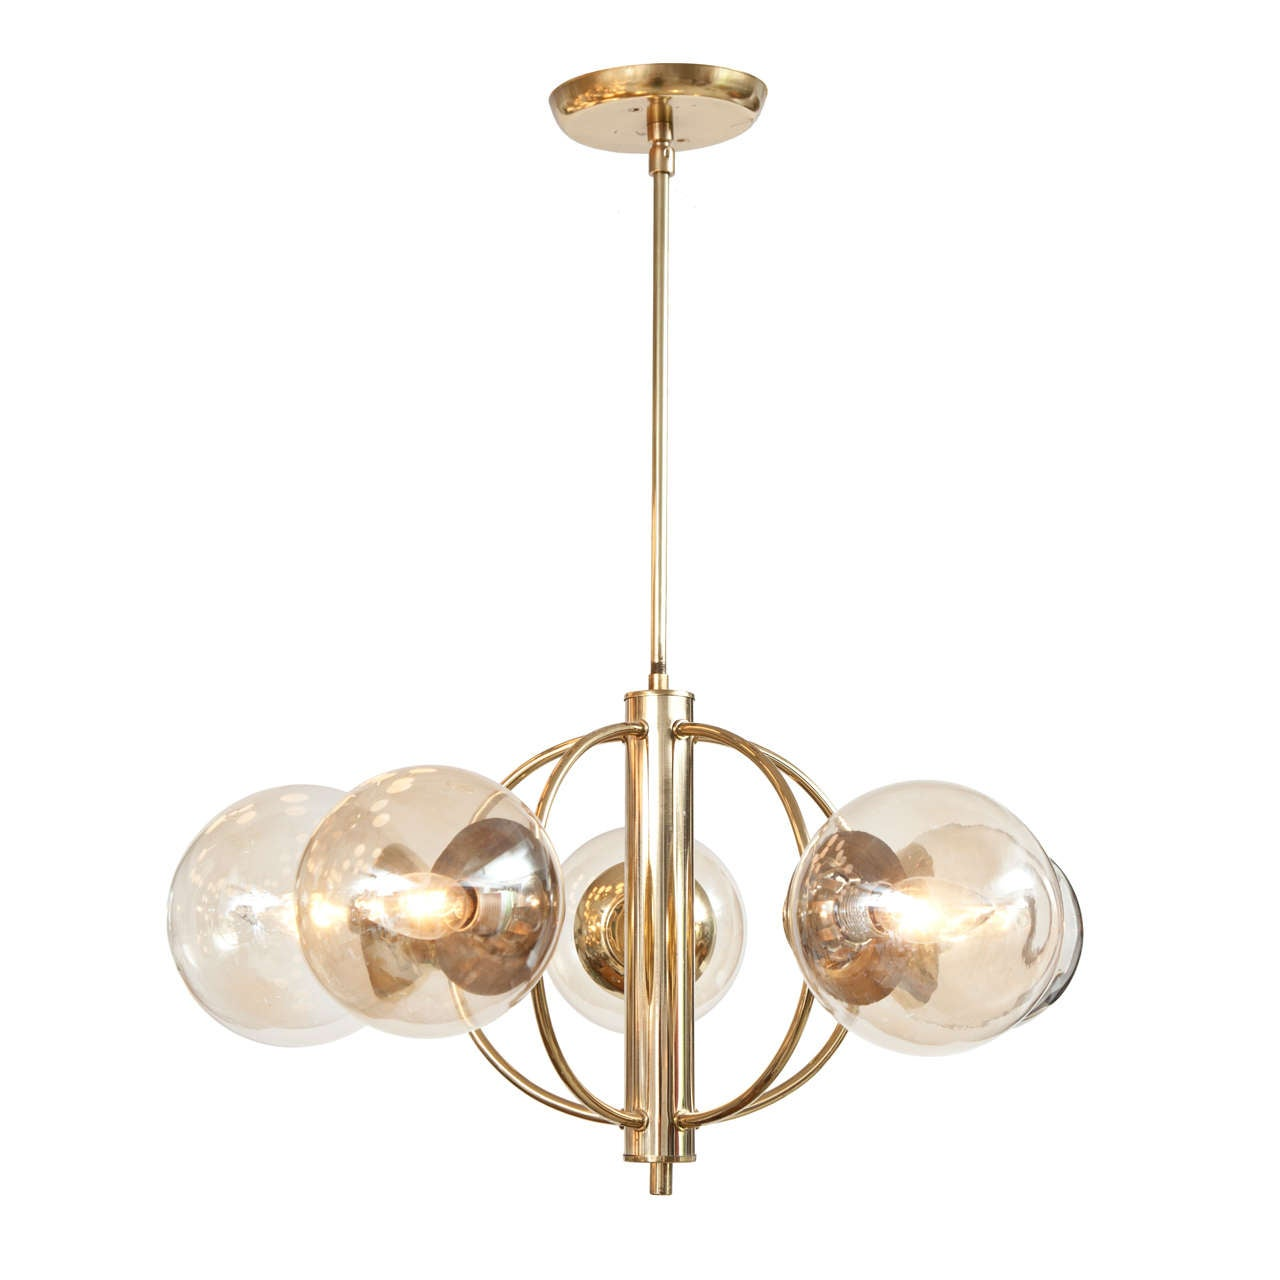 Italian Five Globe Chandelier, circa 1960s For Sale